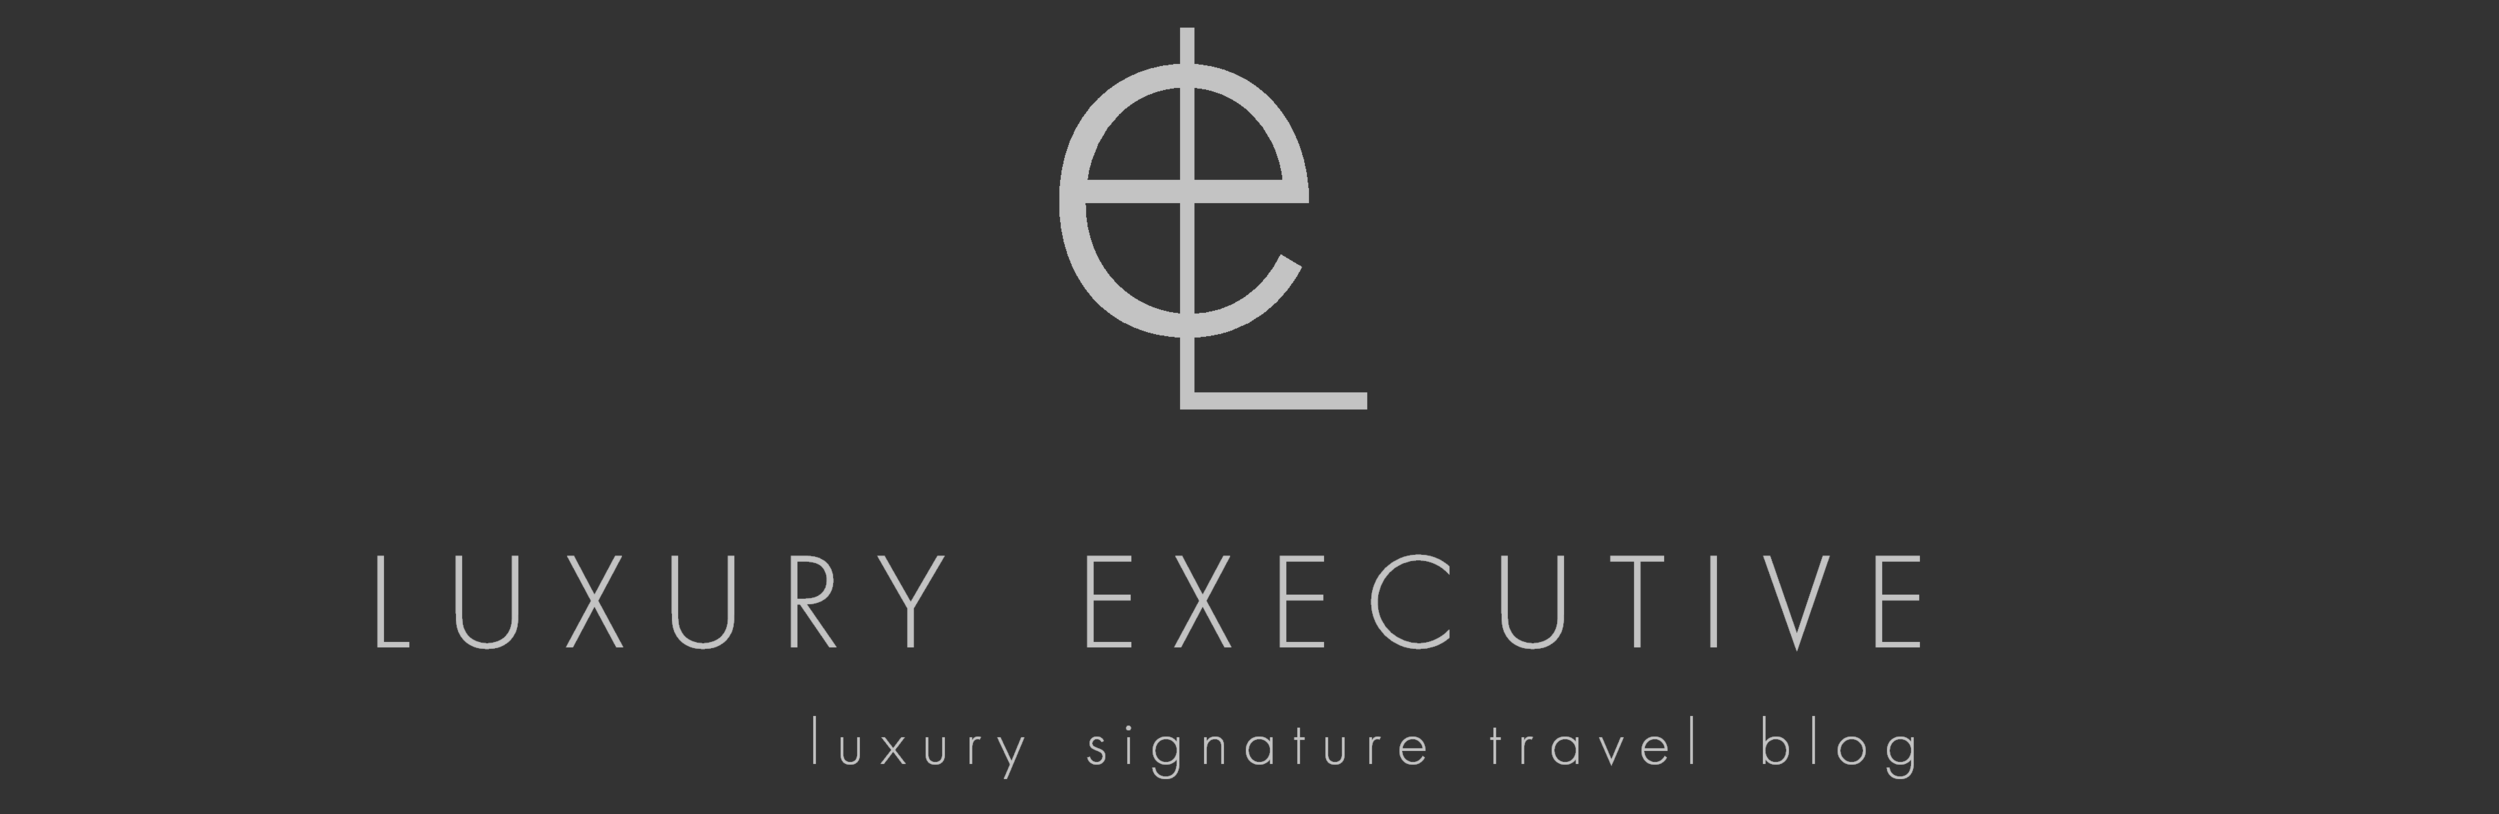 Luxury Executive